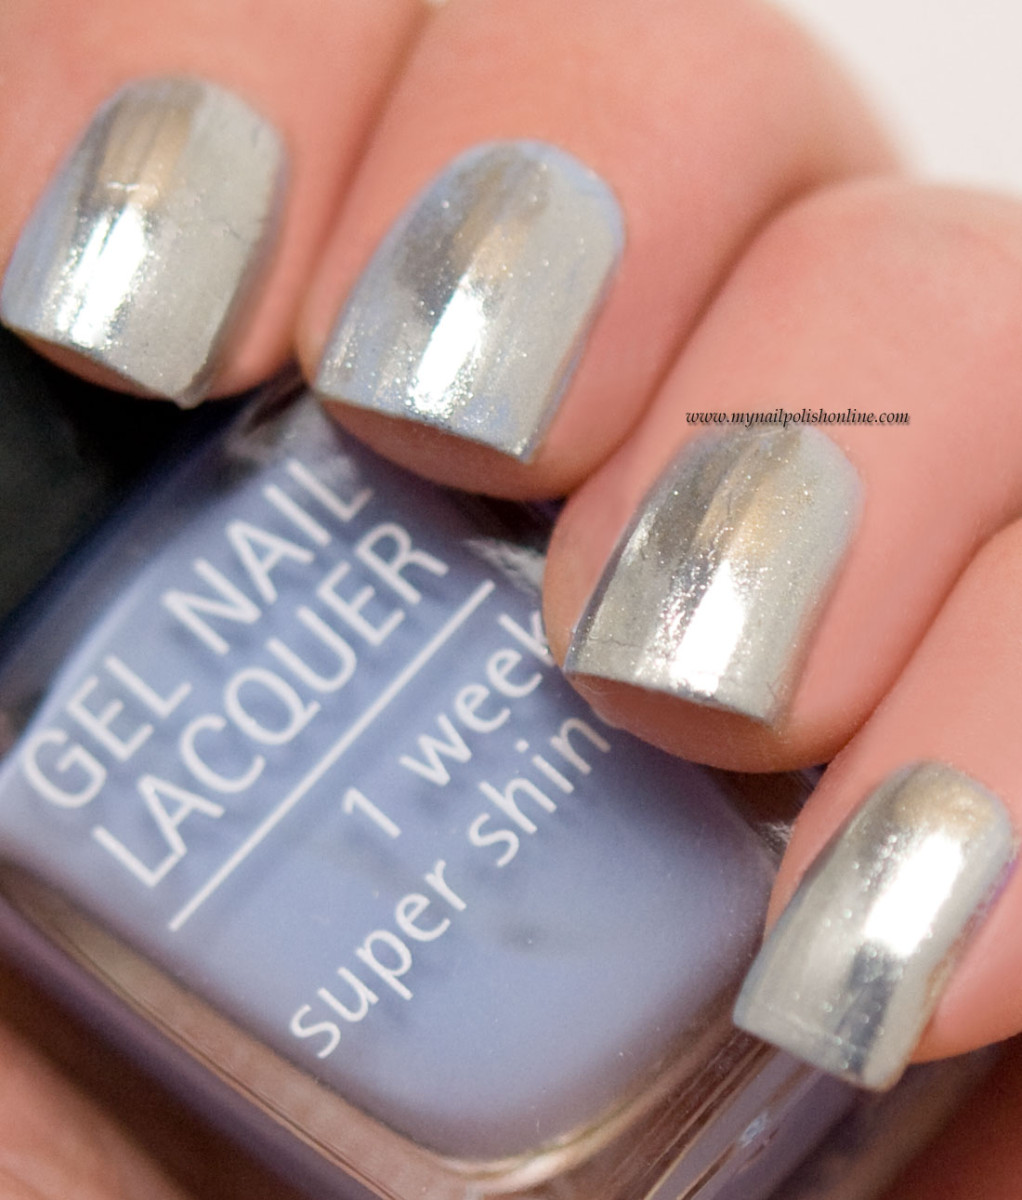 Chrome powder from IsaDora - My Nail Polish Online